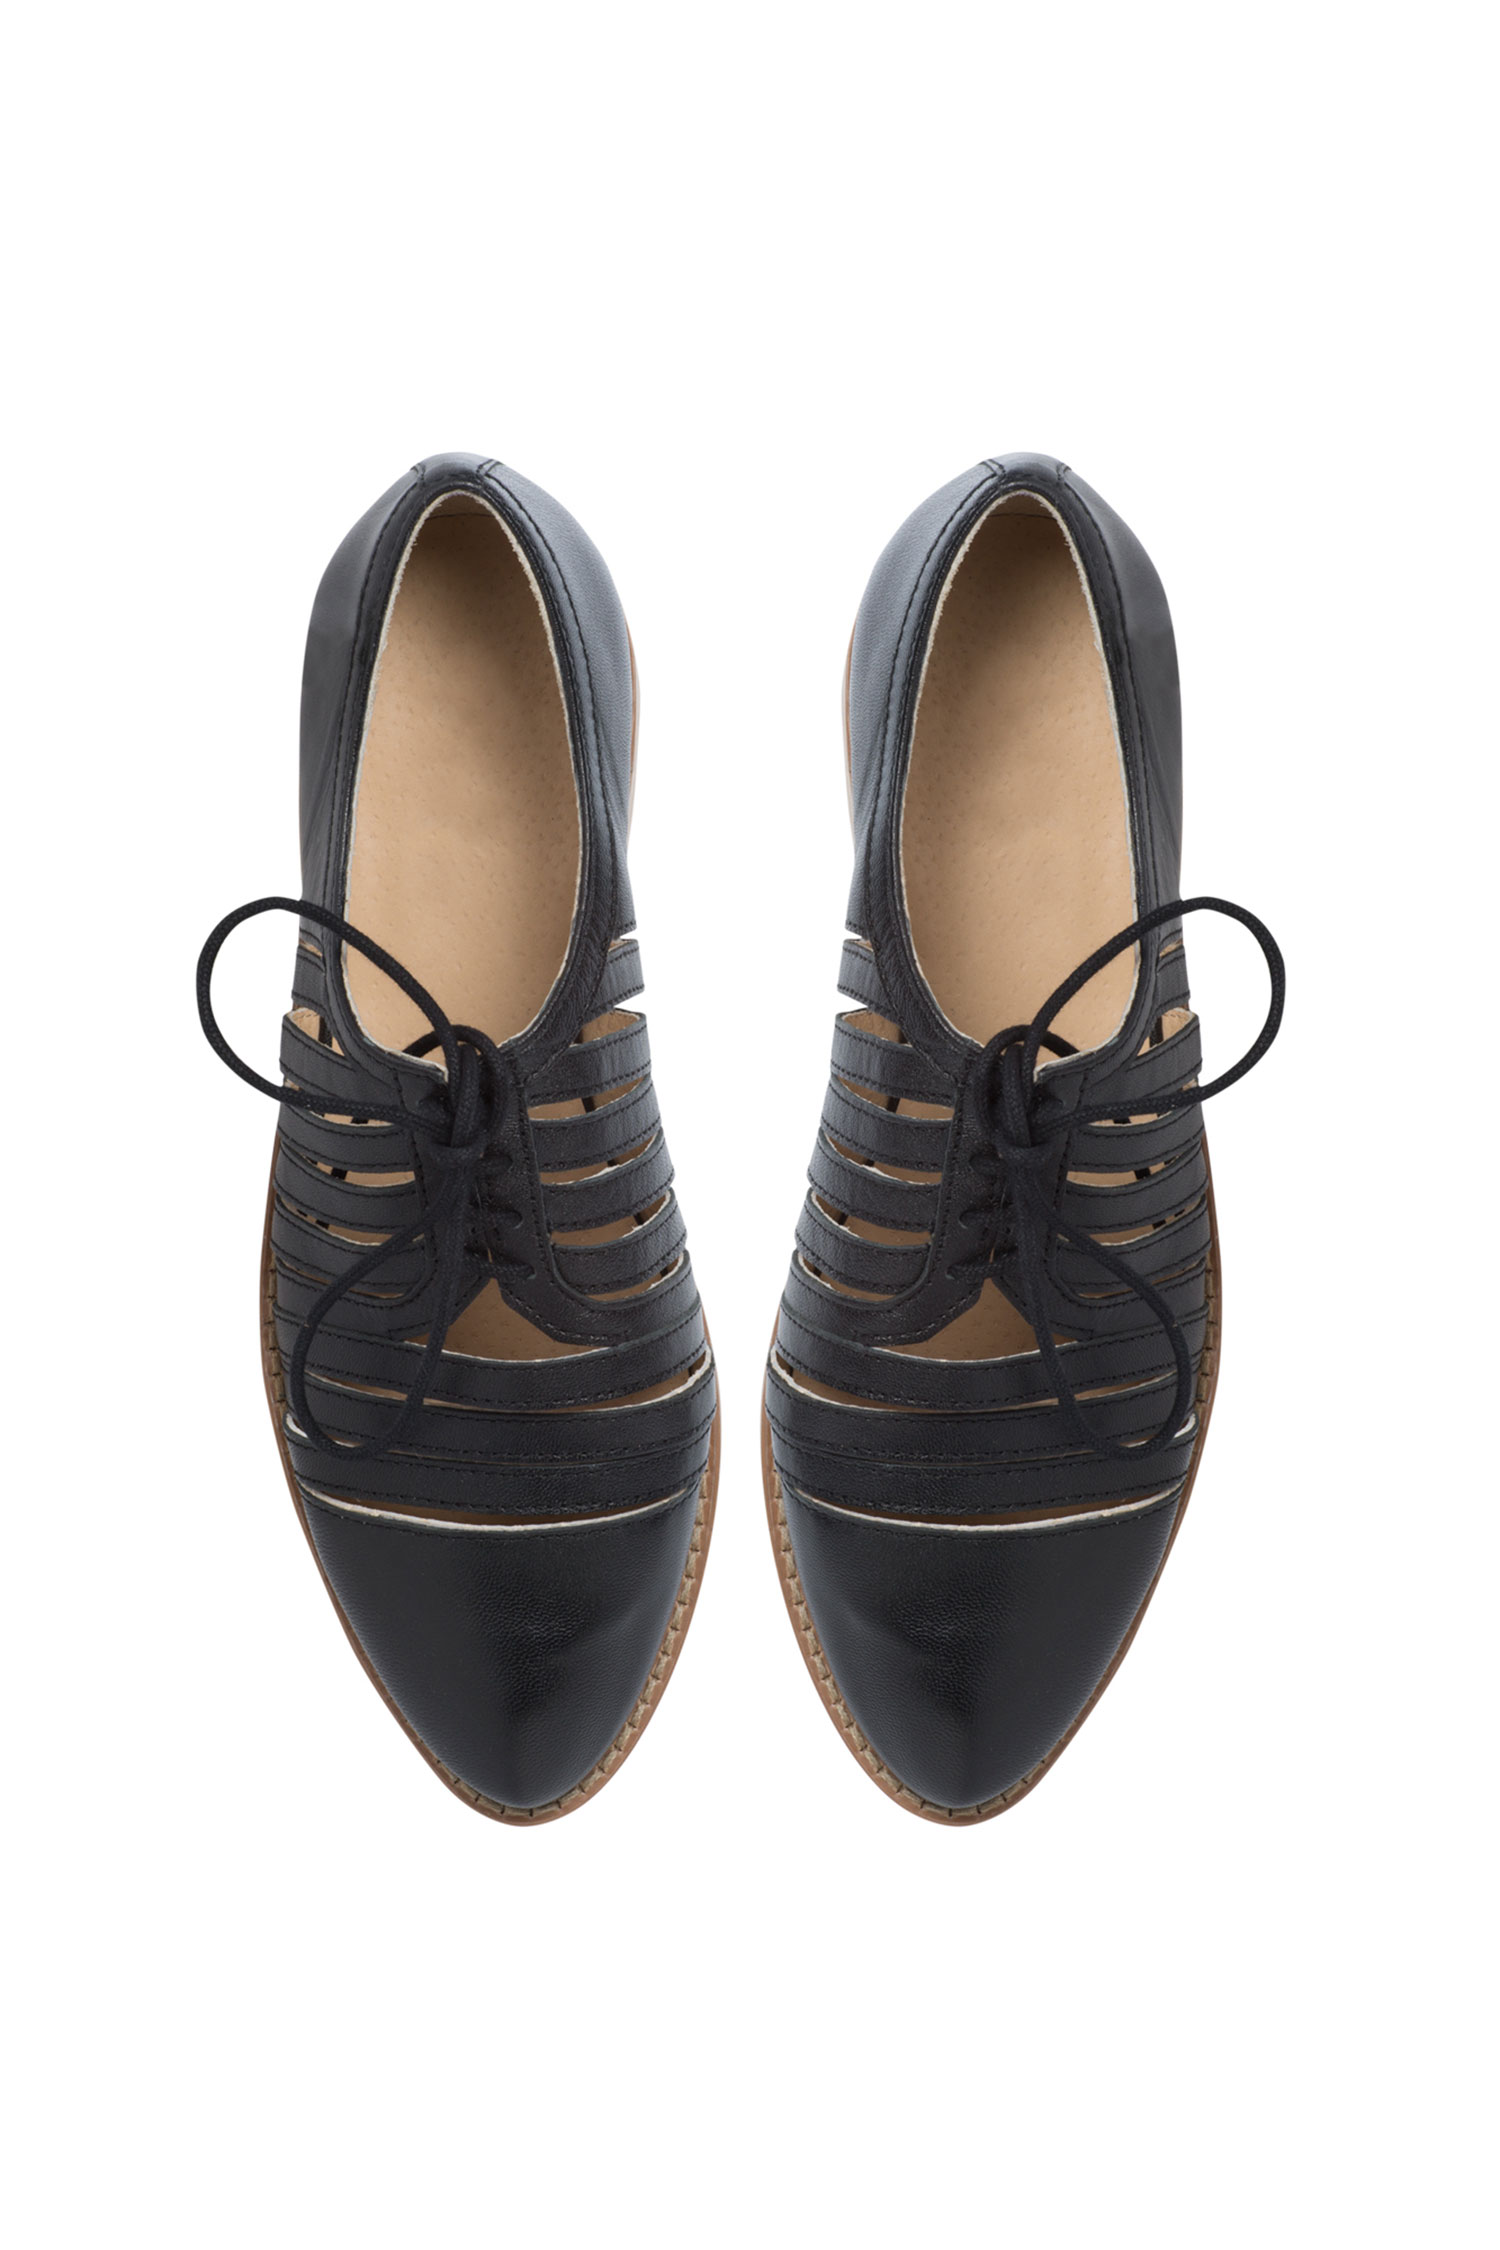 Wide Fit Leather Cutout Brogue Style Number: 137262